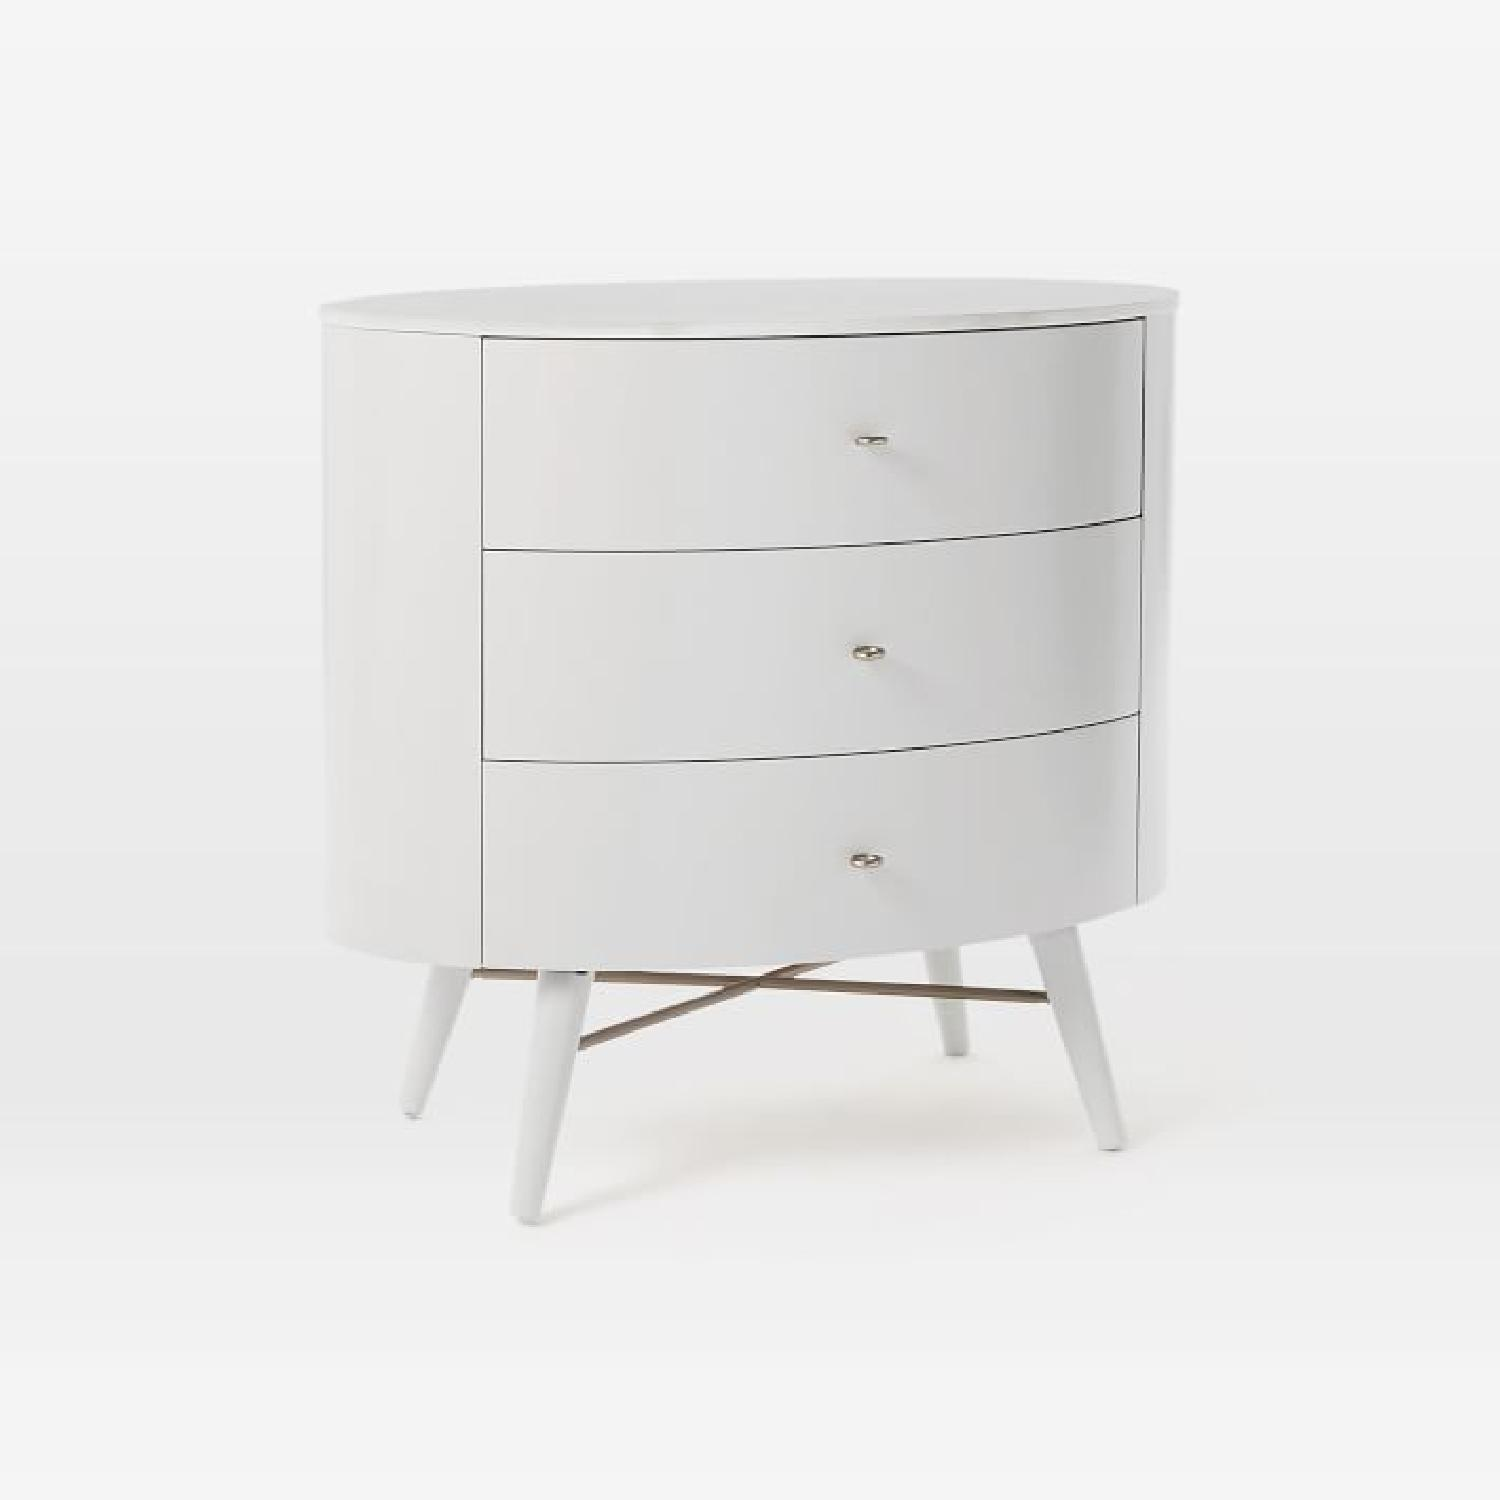 West Elm Penelope 3 Drawer Dresser - image-0